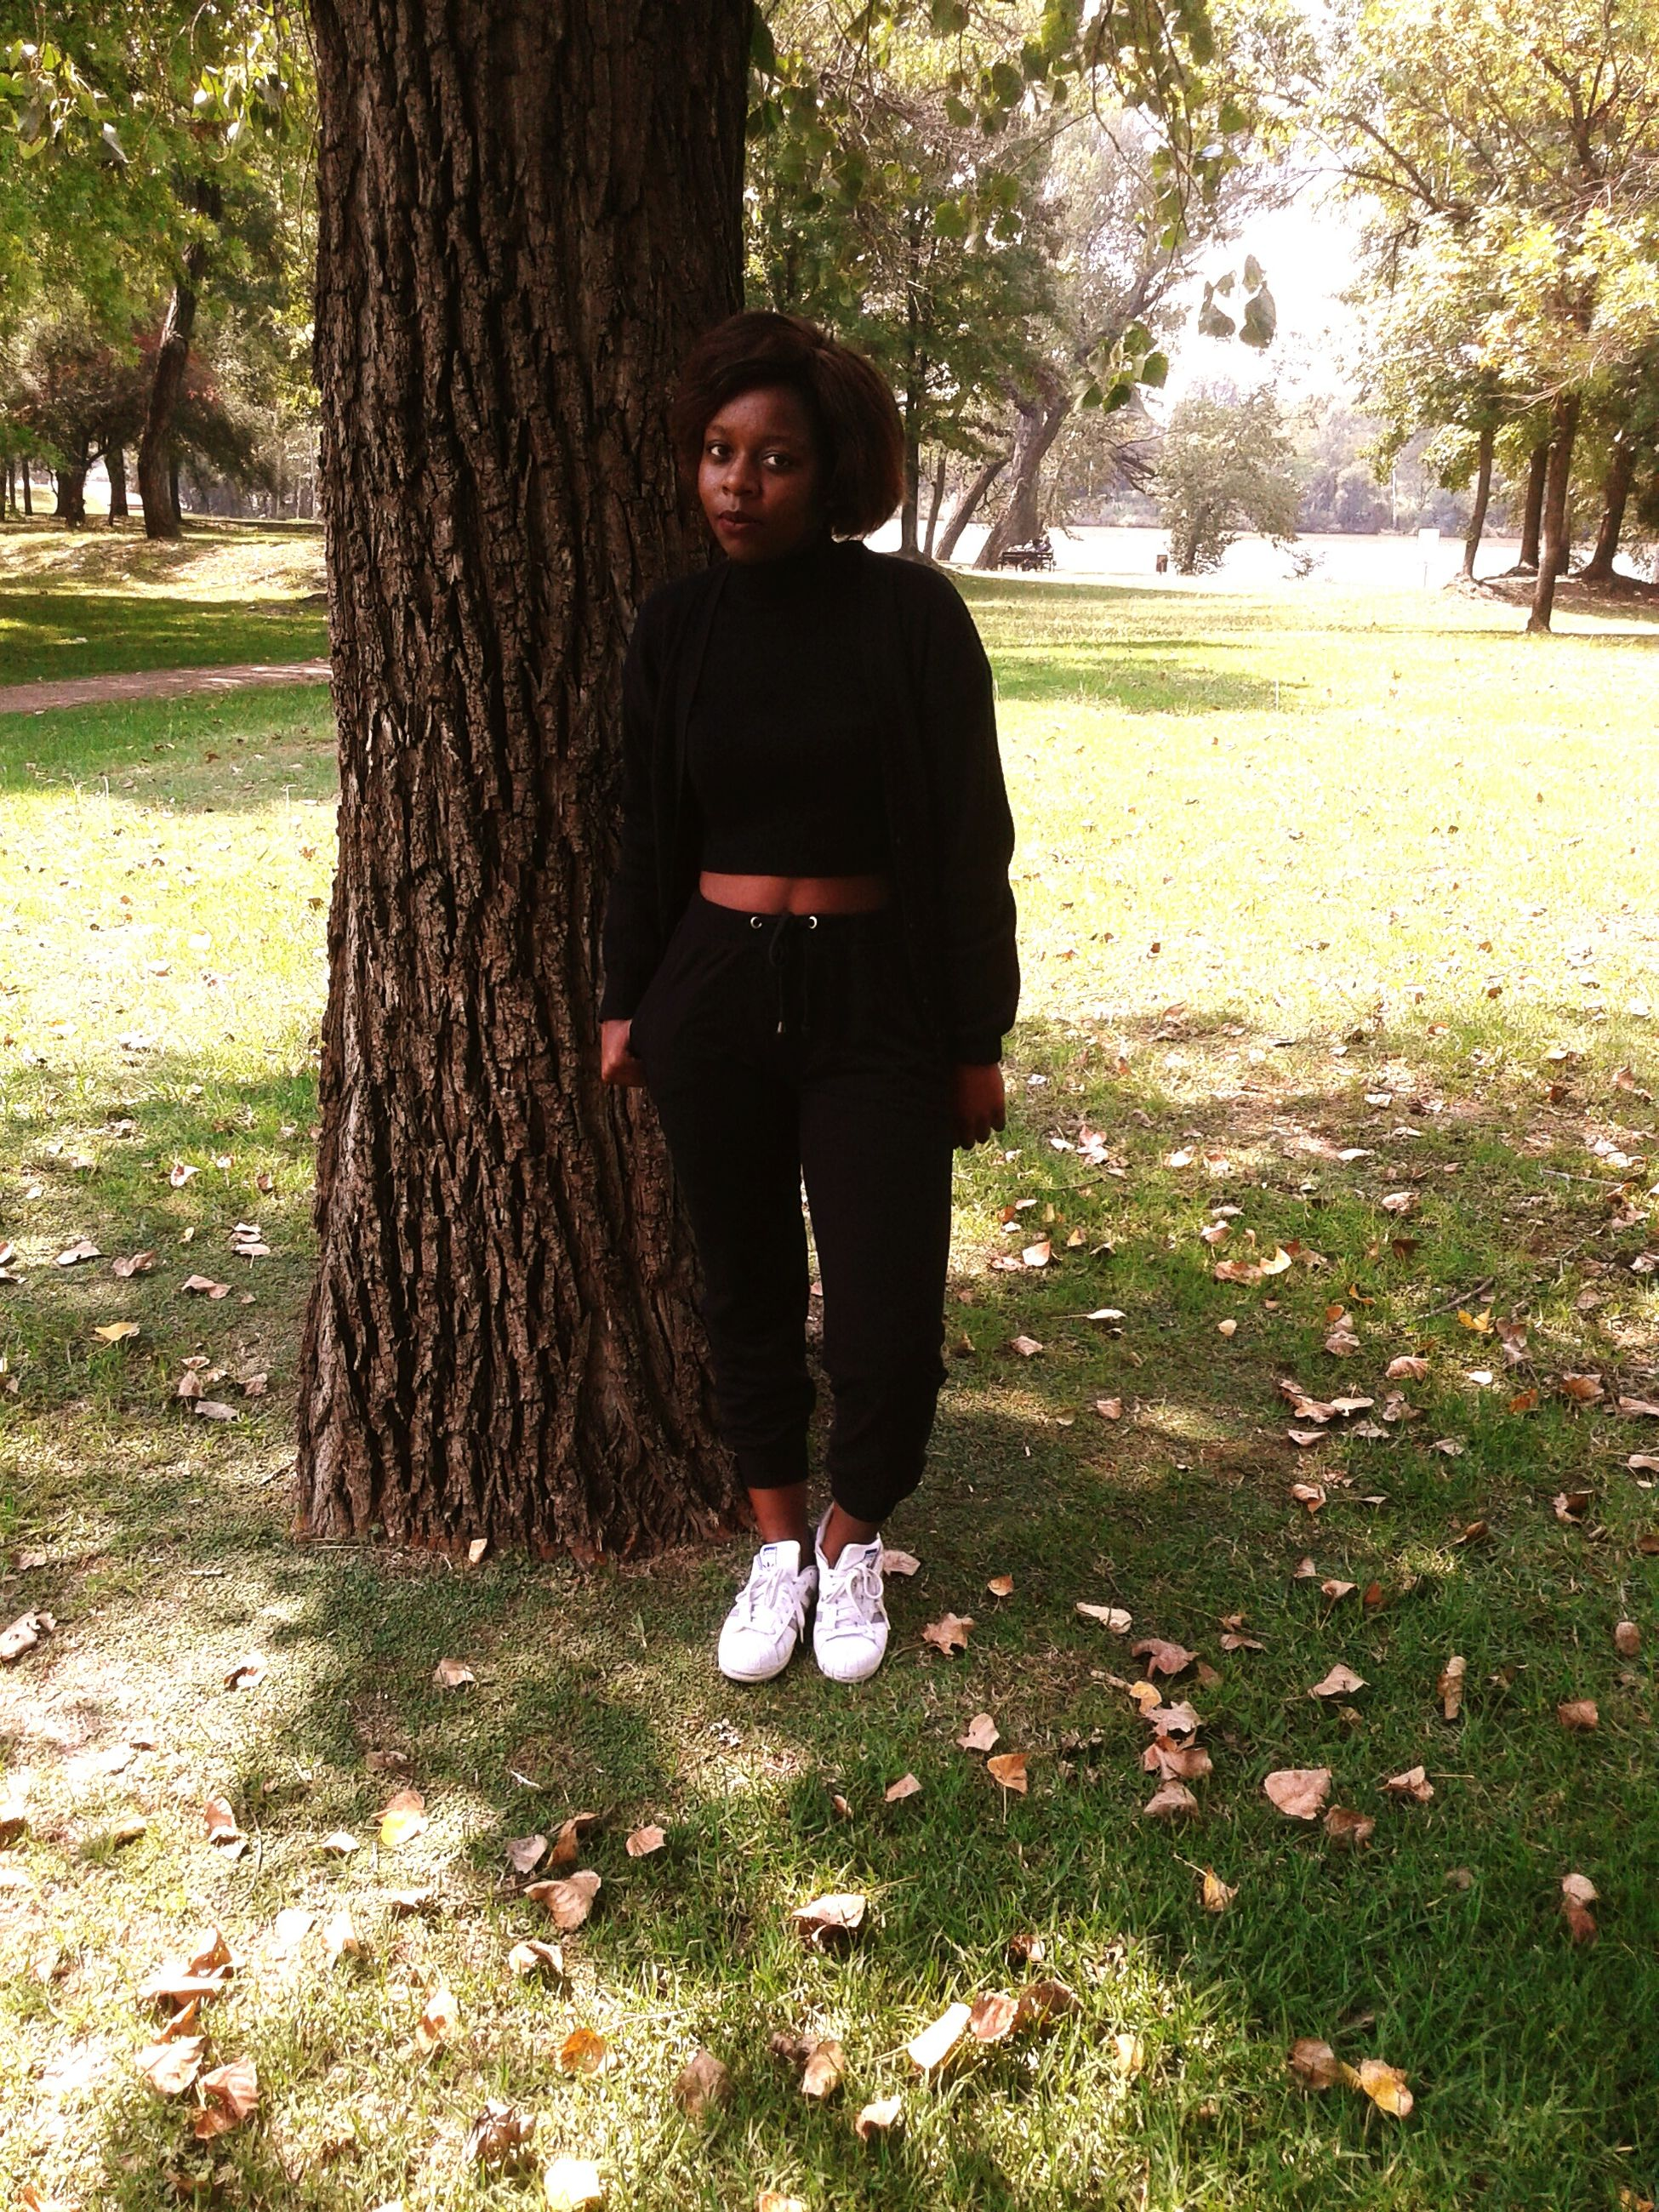 tree, tree trunk, lifestyles, front view, young adult, person, casual clothing, standing, looking at camera, leisure activity, forest, portrait, young women, full length, grass, three quarter length, park - man made space, nature